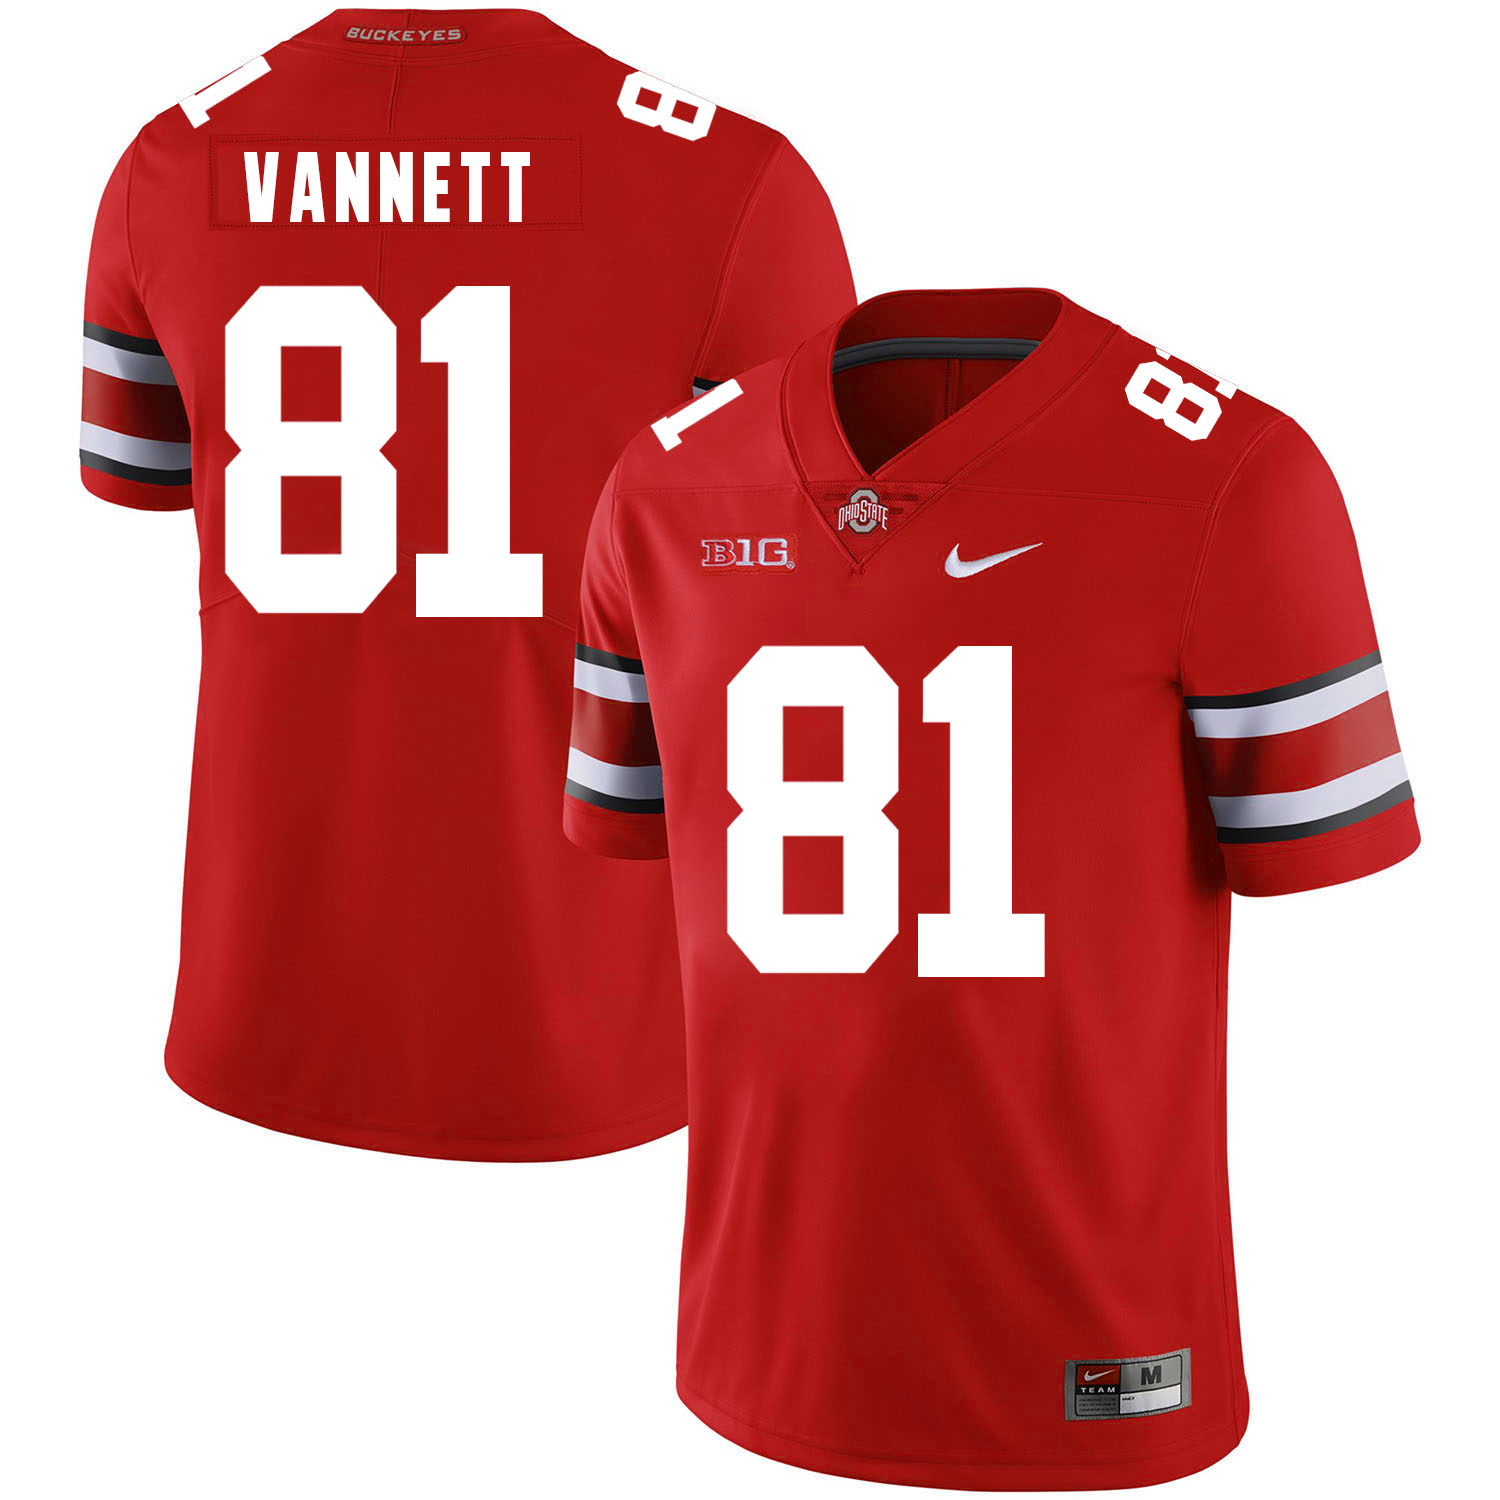 Ohio State Buckeyes 81 Nick Vannett Red Nike College Football Jersey